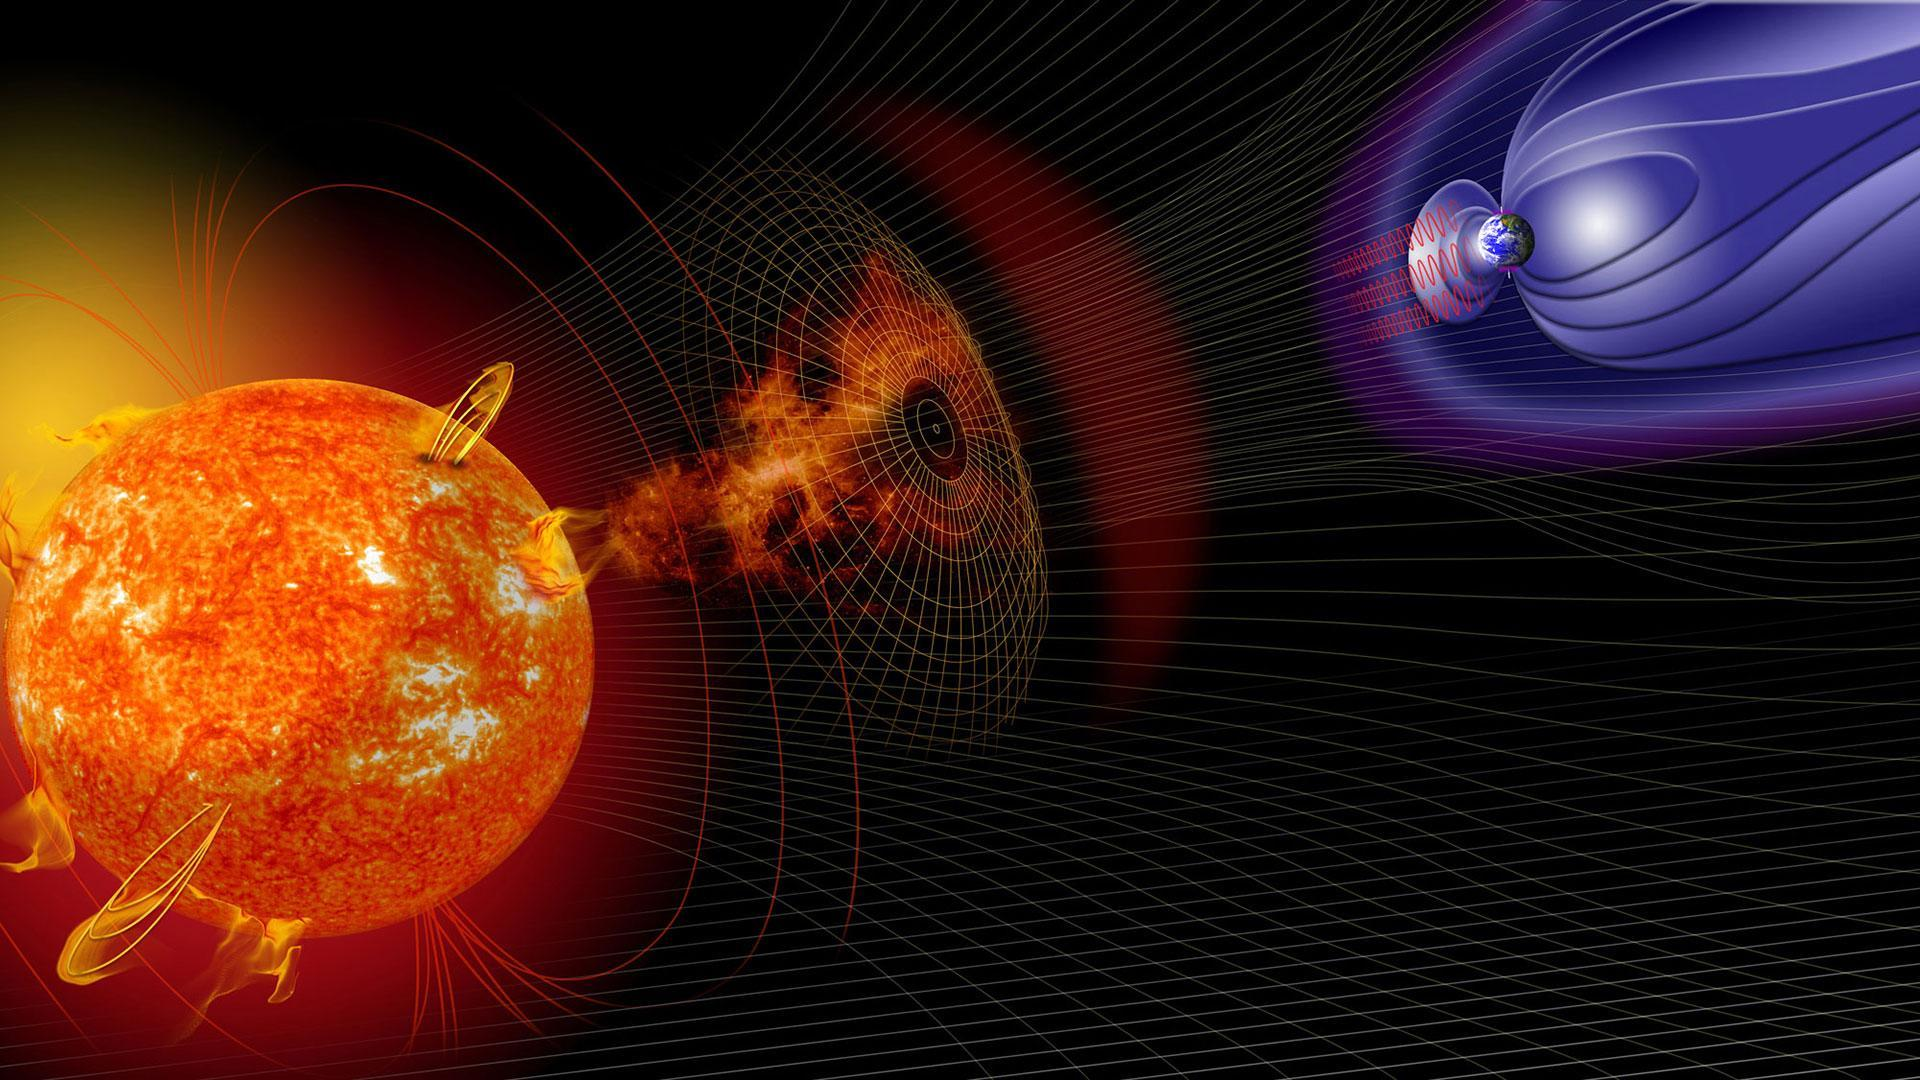 Space weather influences the Earth's magnetic field